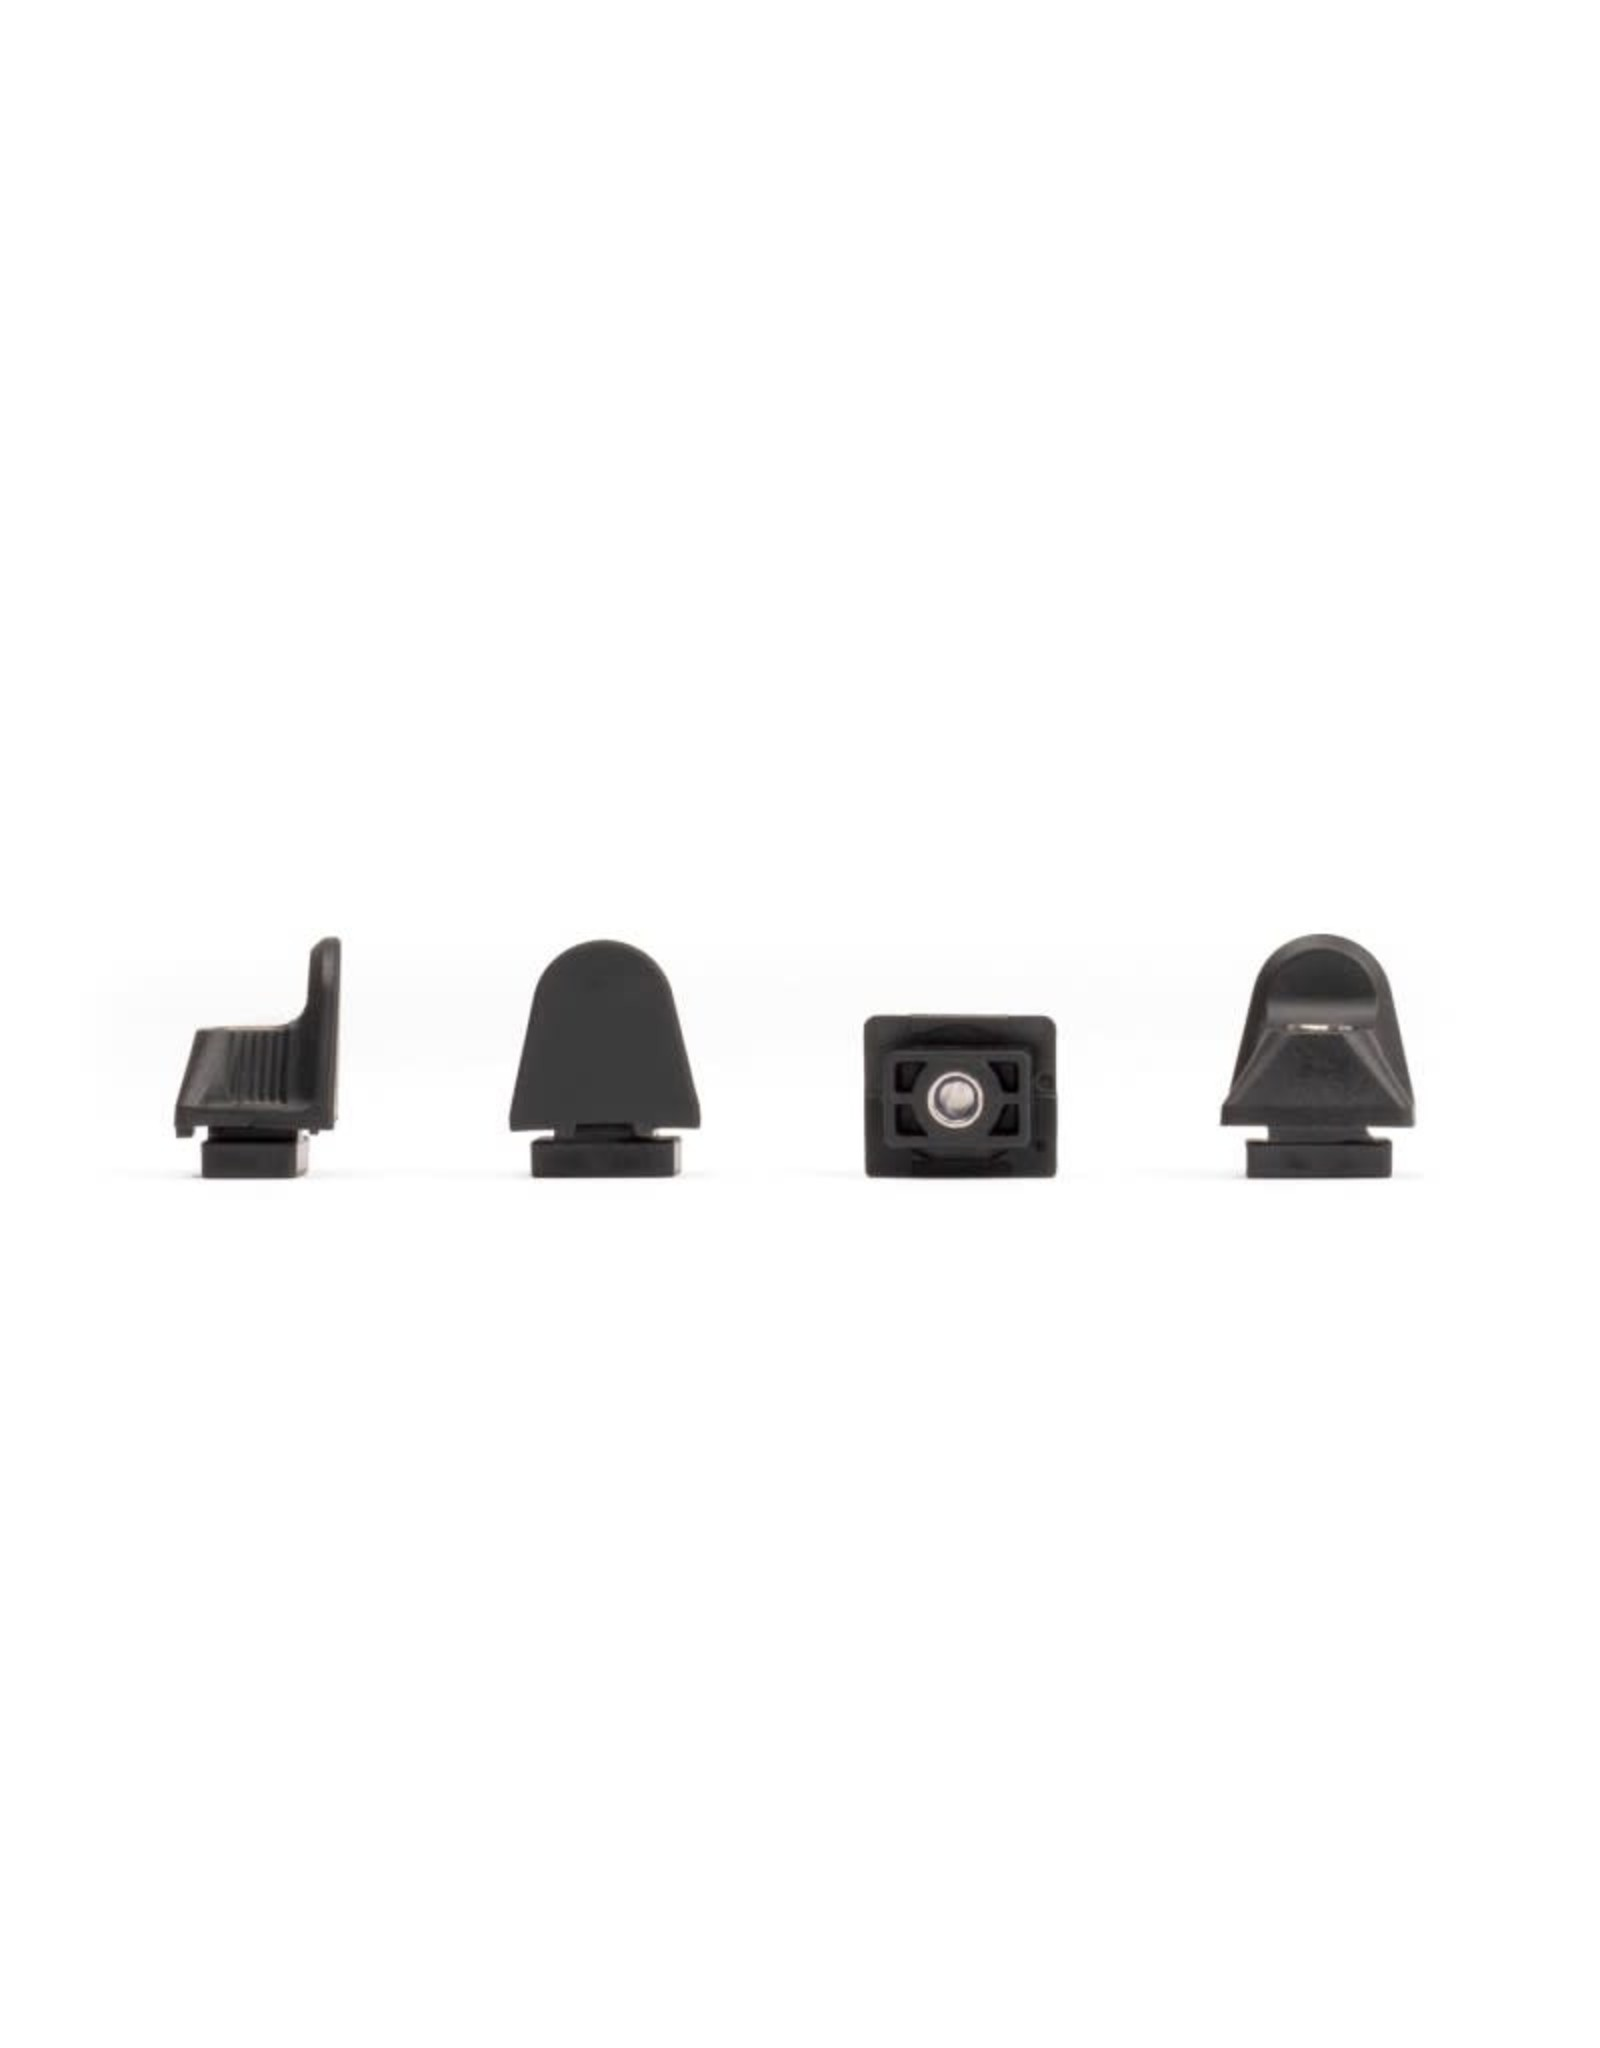 Aclam' Aclam' Smart Track Fasteners 4 Pack